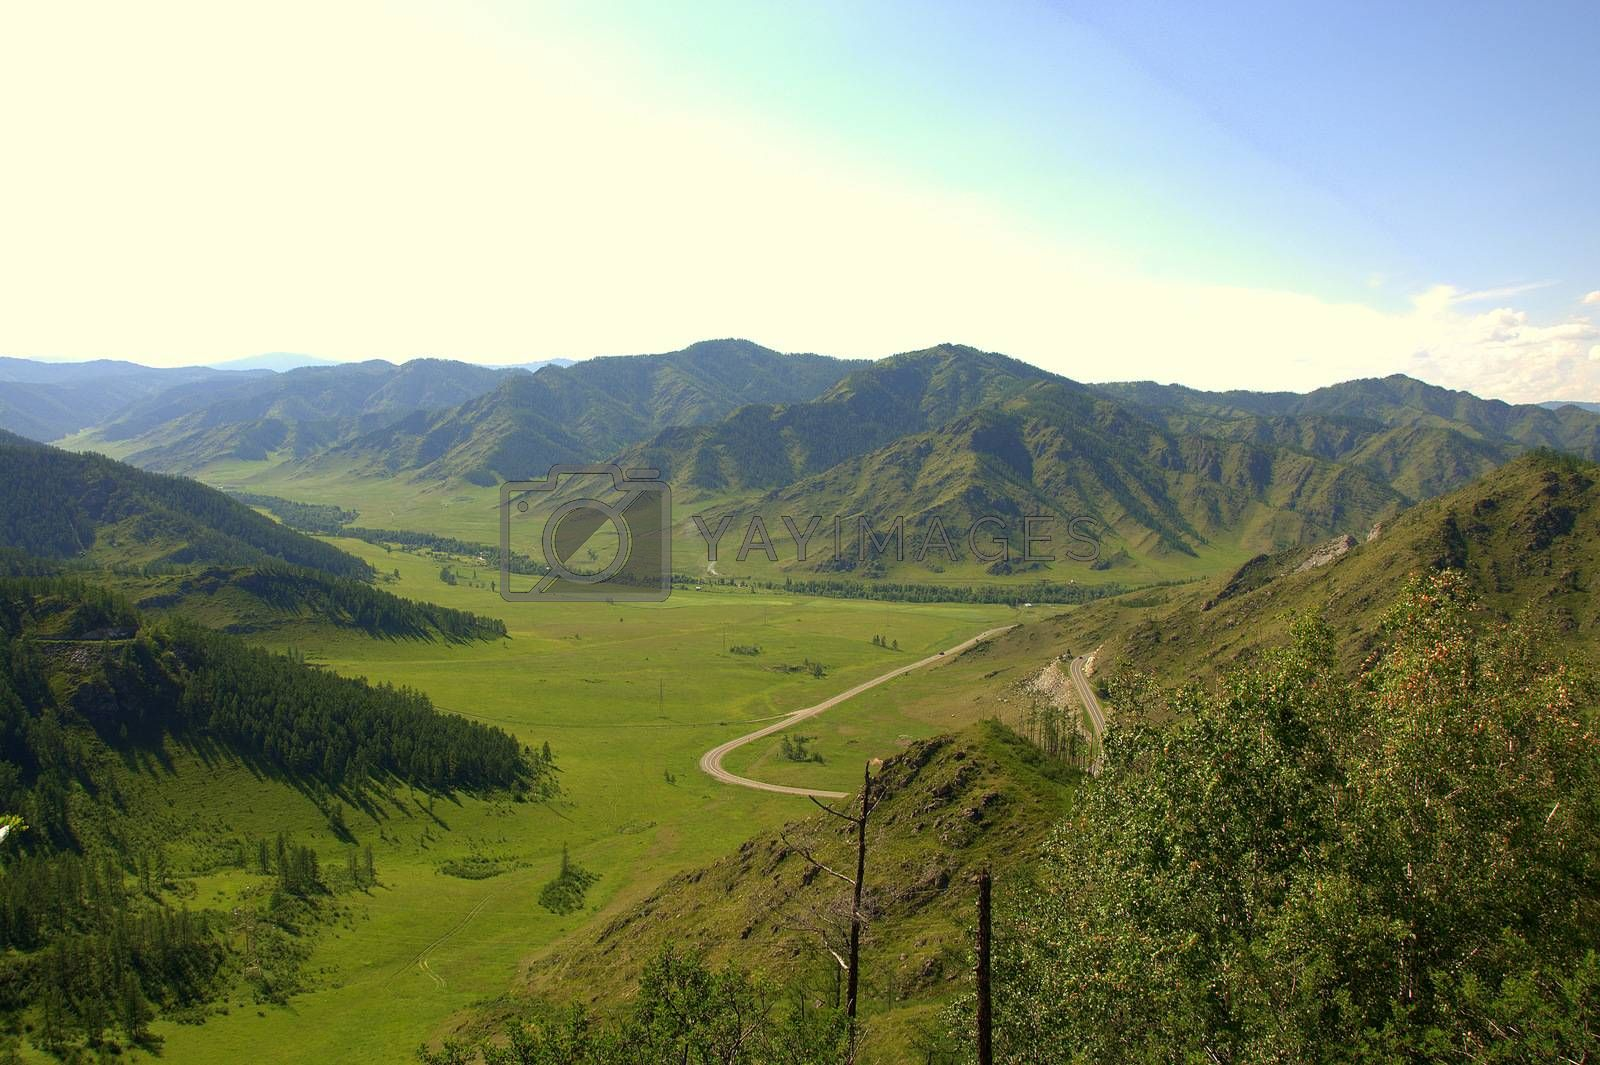 View from the top of the mountain on the road crossing a picturesque valley. Chike-Taman pass, Altai, Siberia, Russia.